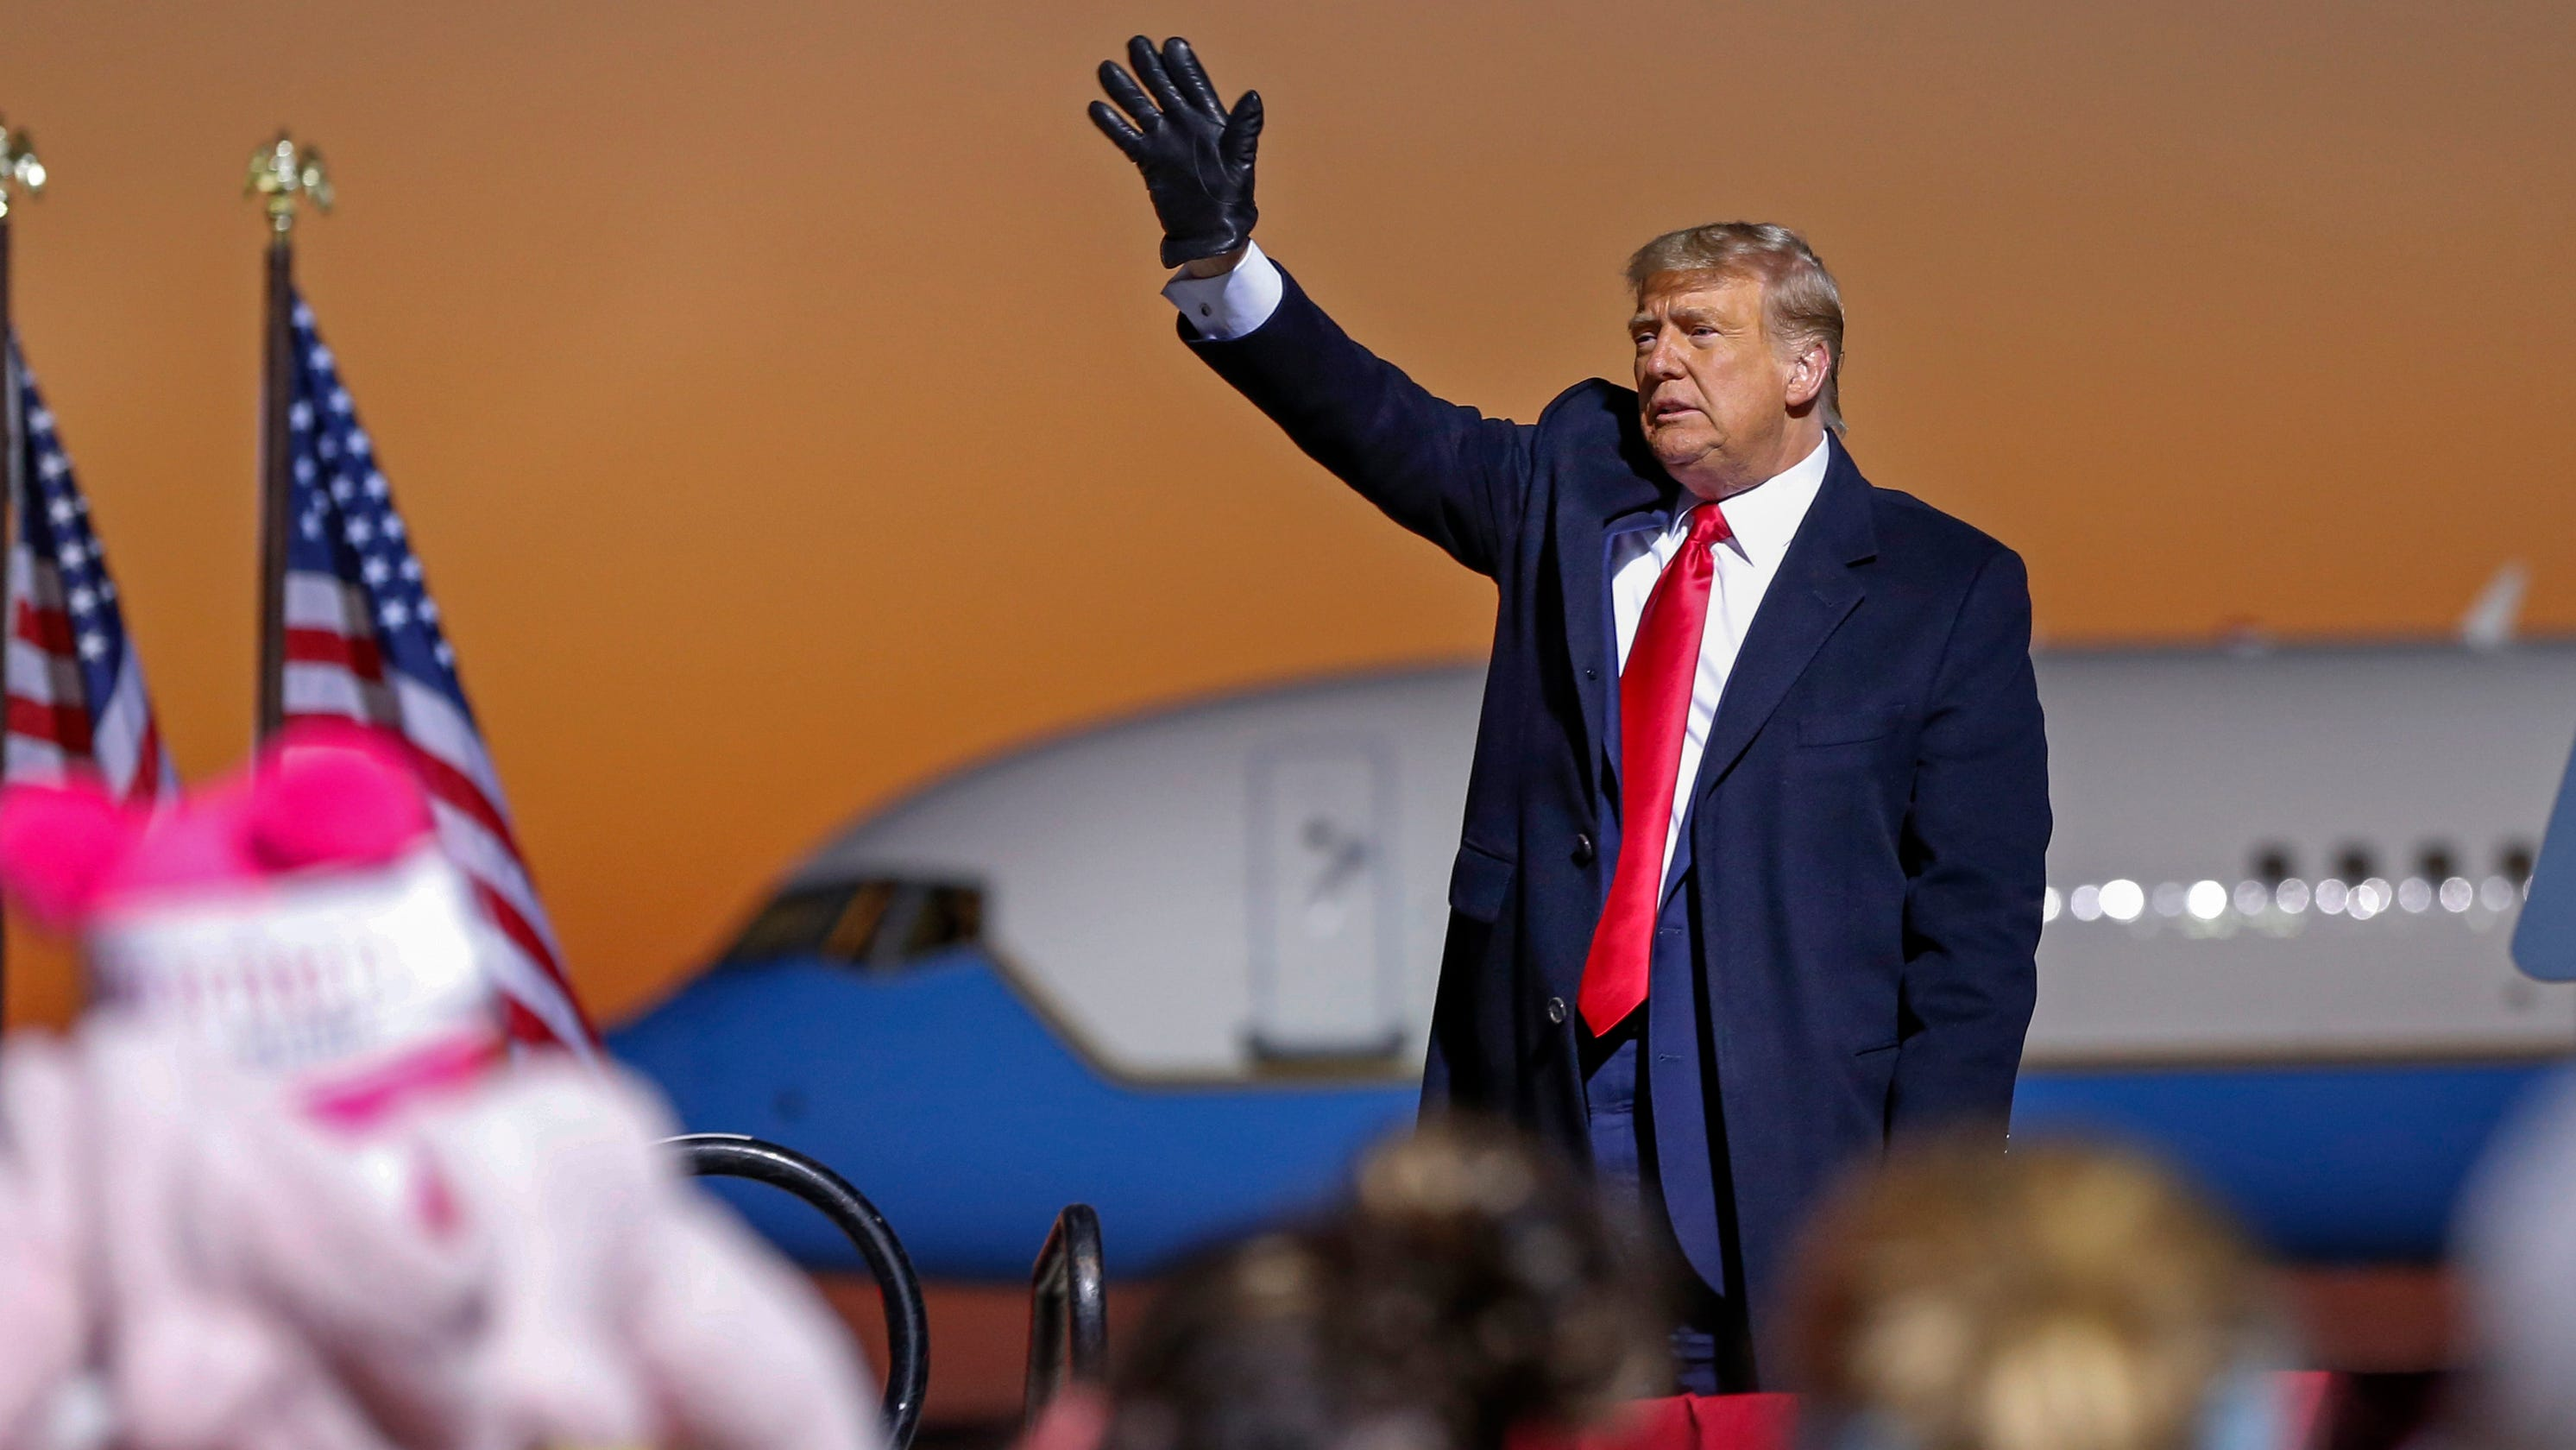 Donald Trump wants to run the Republican party even if he leaves office. Can he?